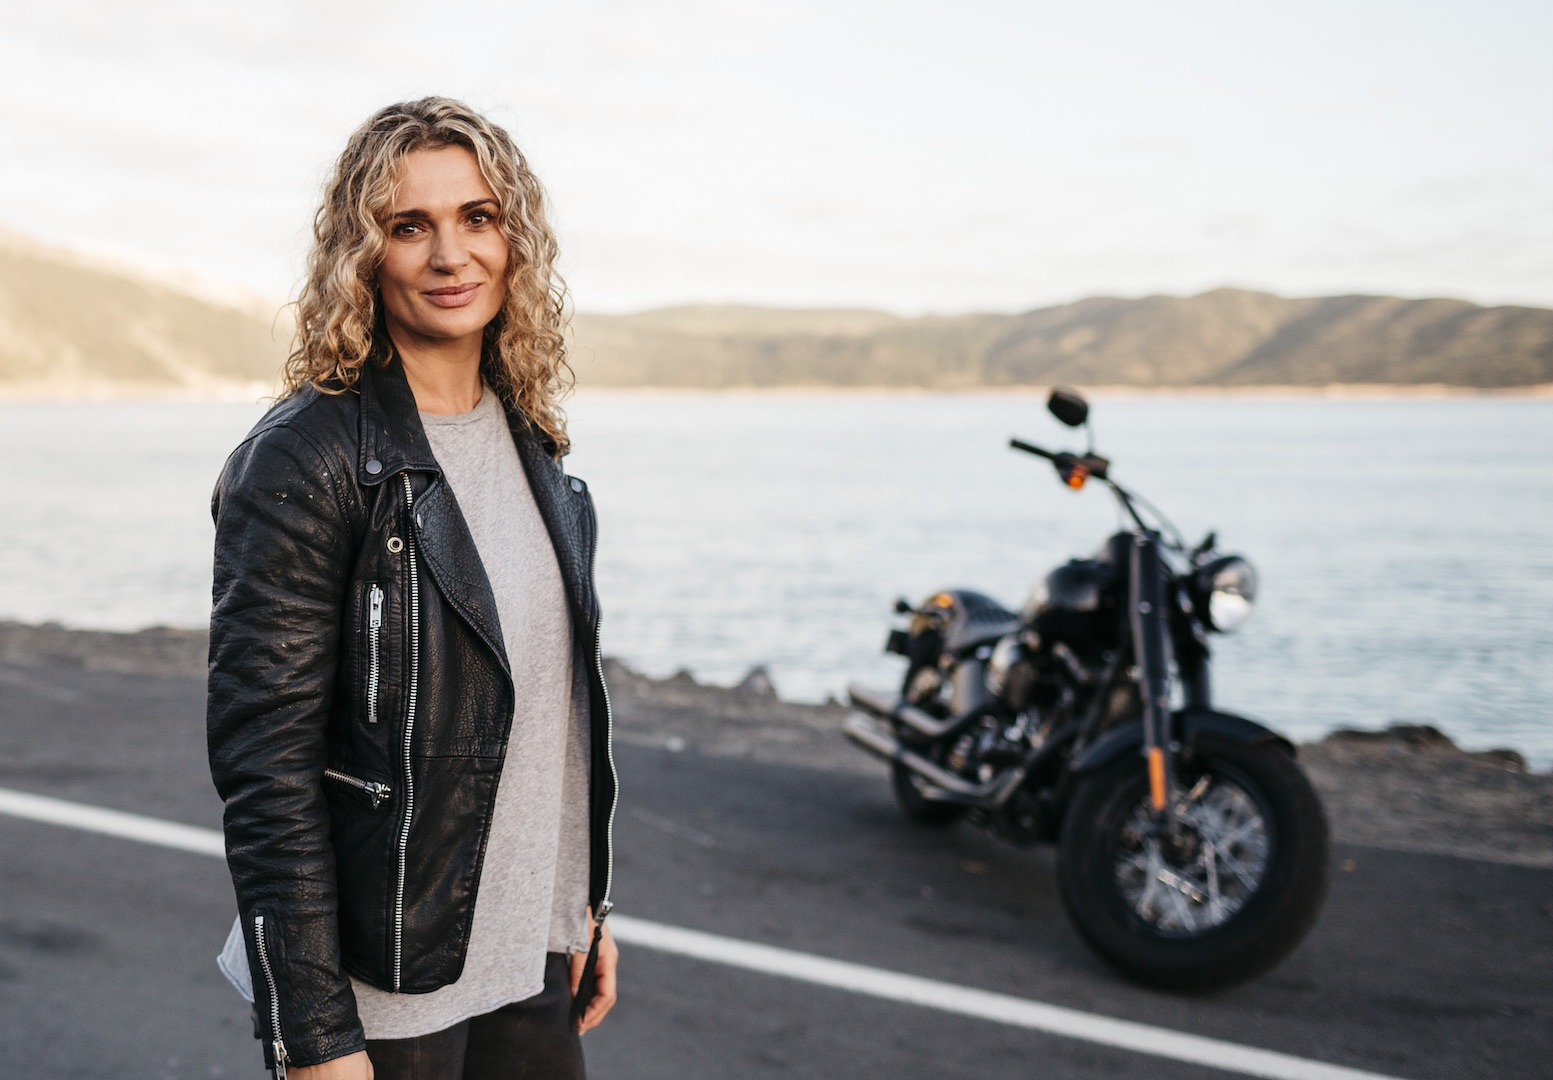 Actress Danielle Cormack - how a beautiful woman can distract a rider